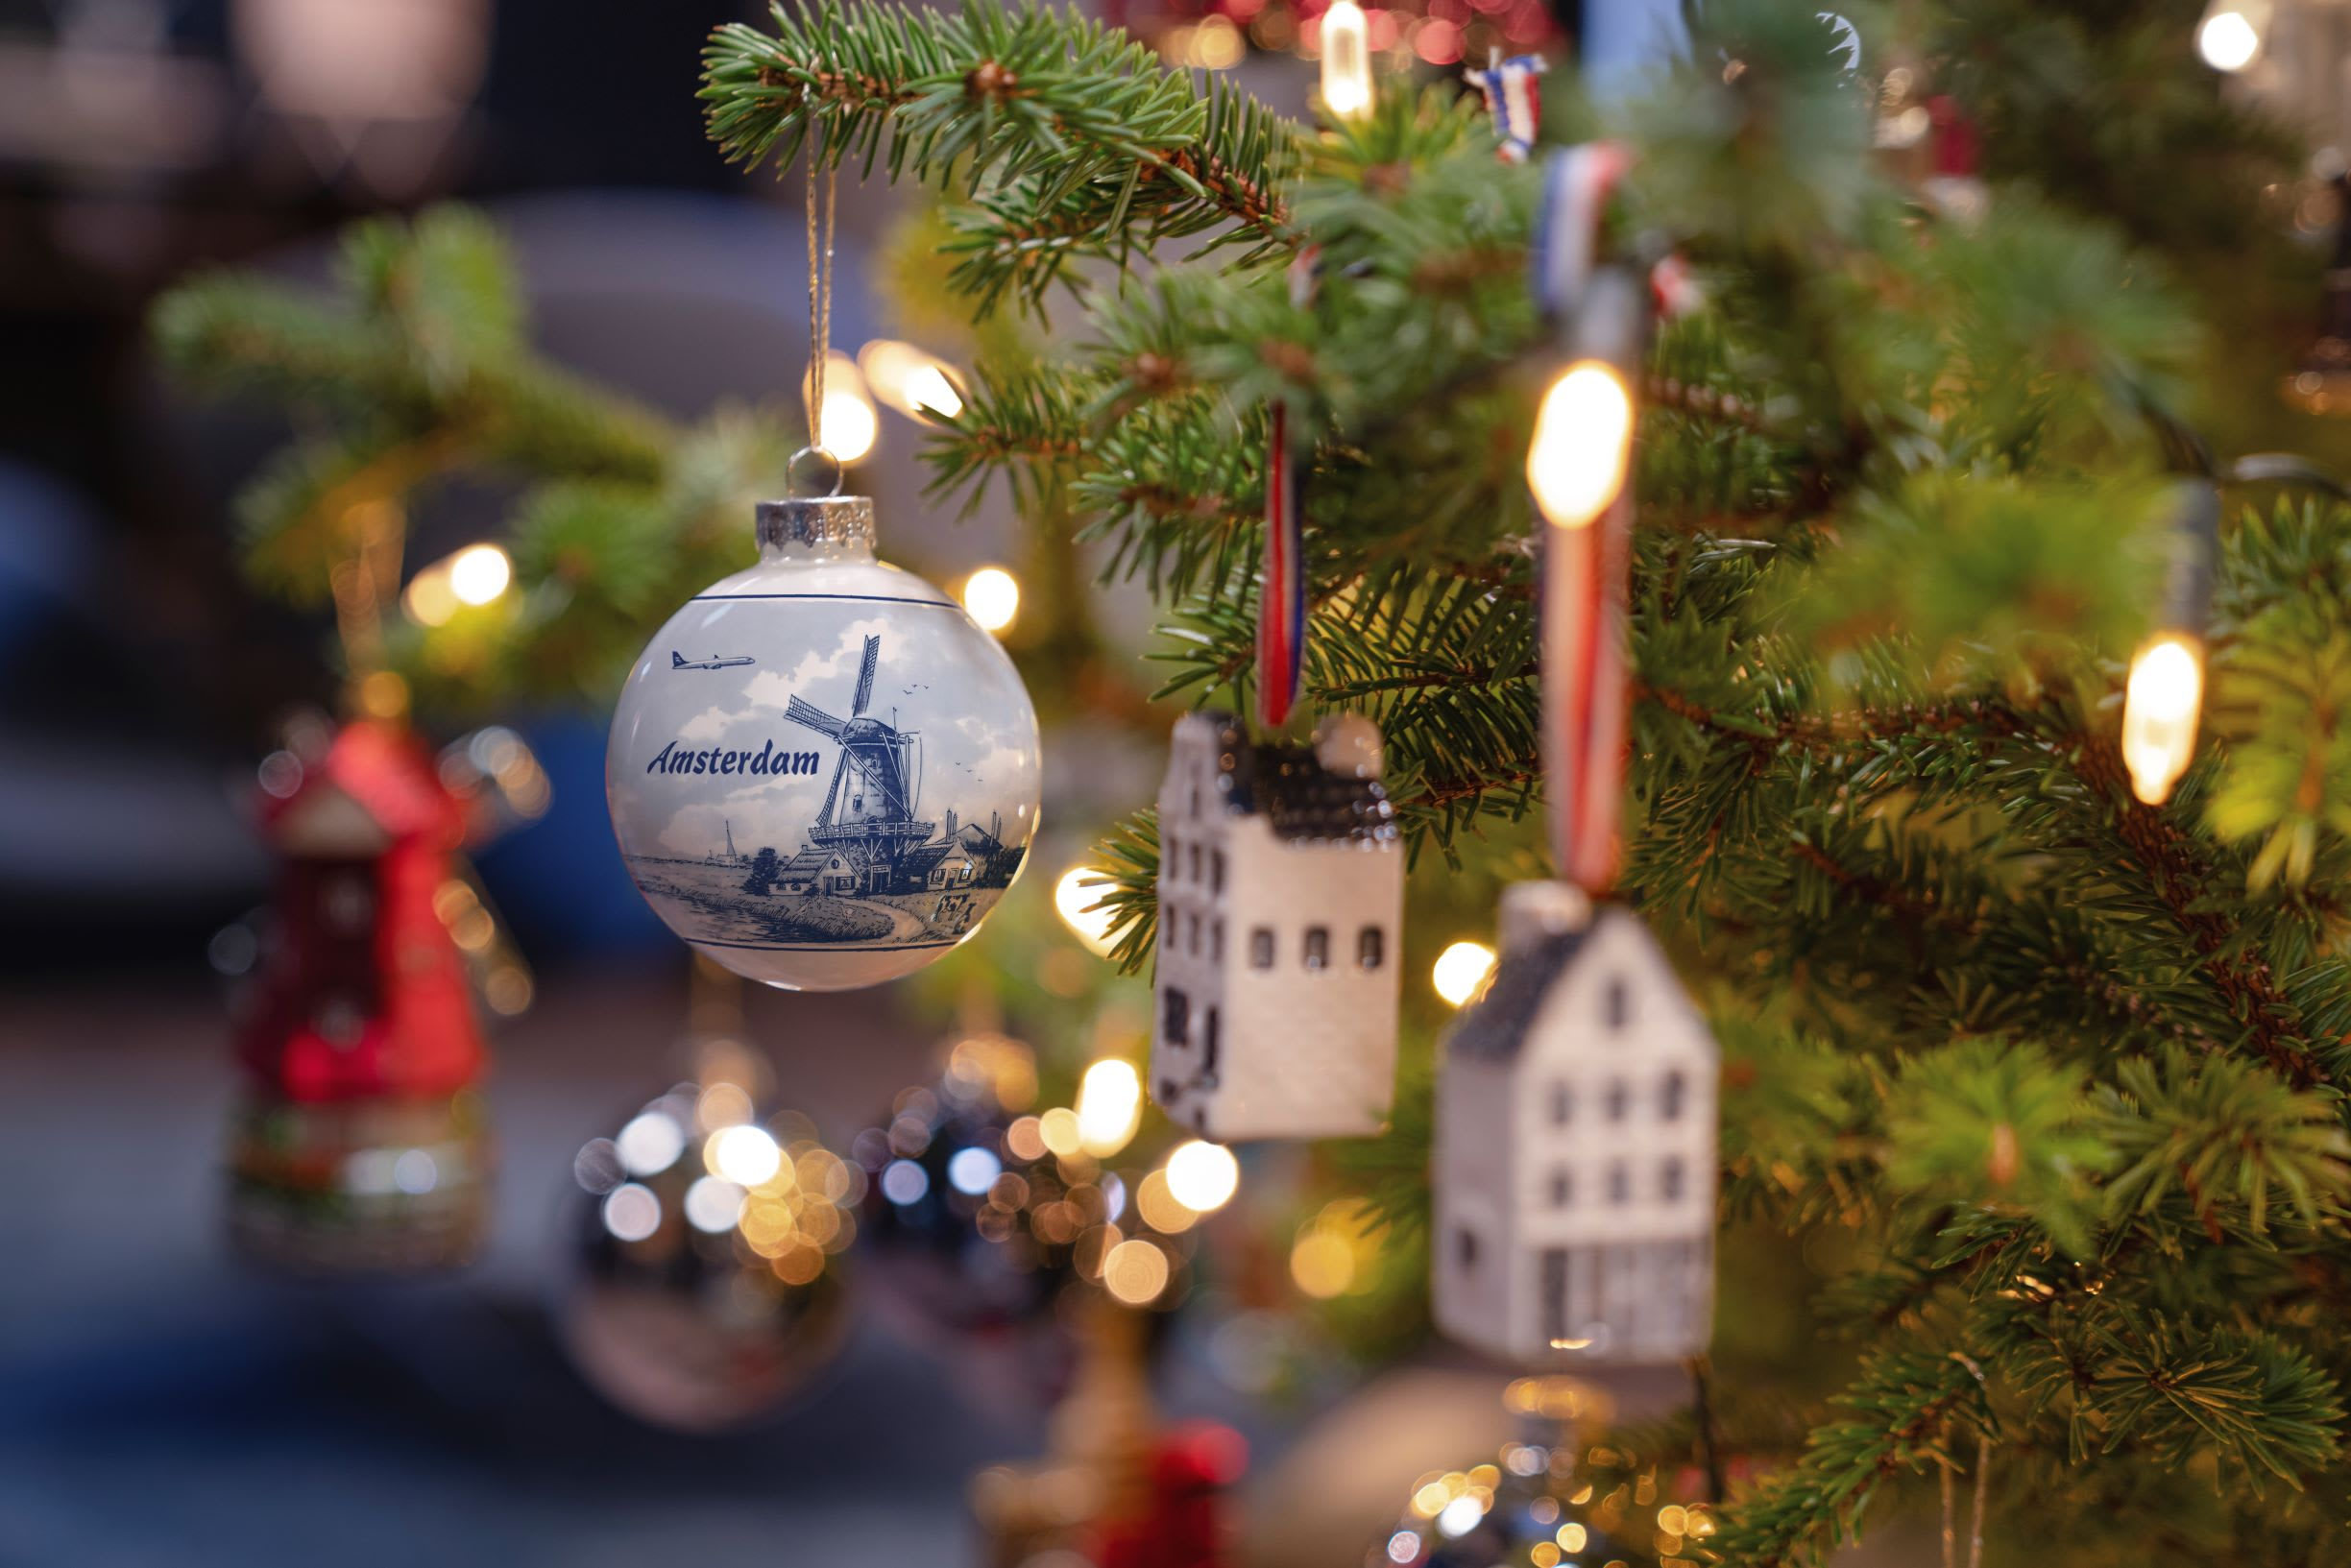 an up close of a Christmas tree with a bauble with a windmill on it and copy that reads 'Amsterdam'